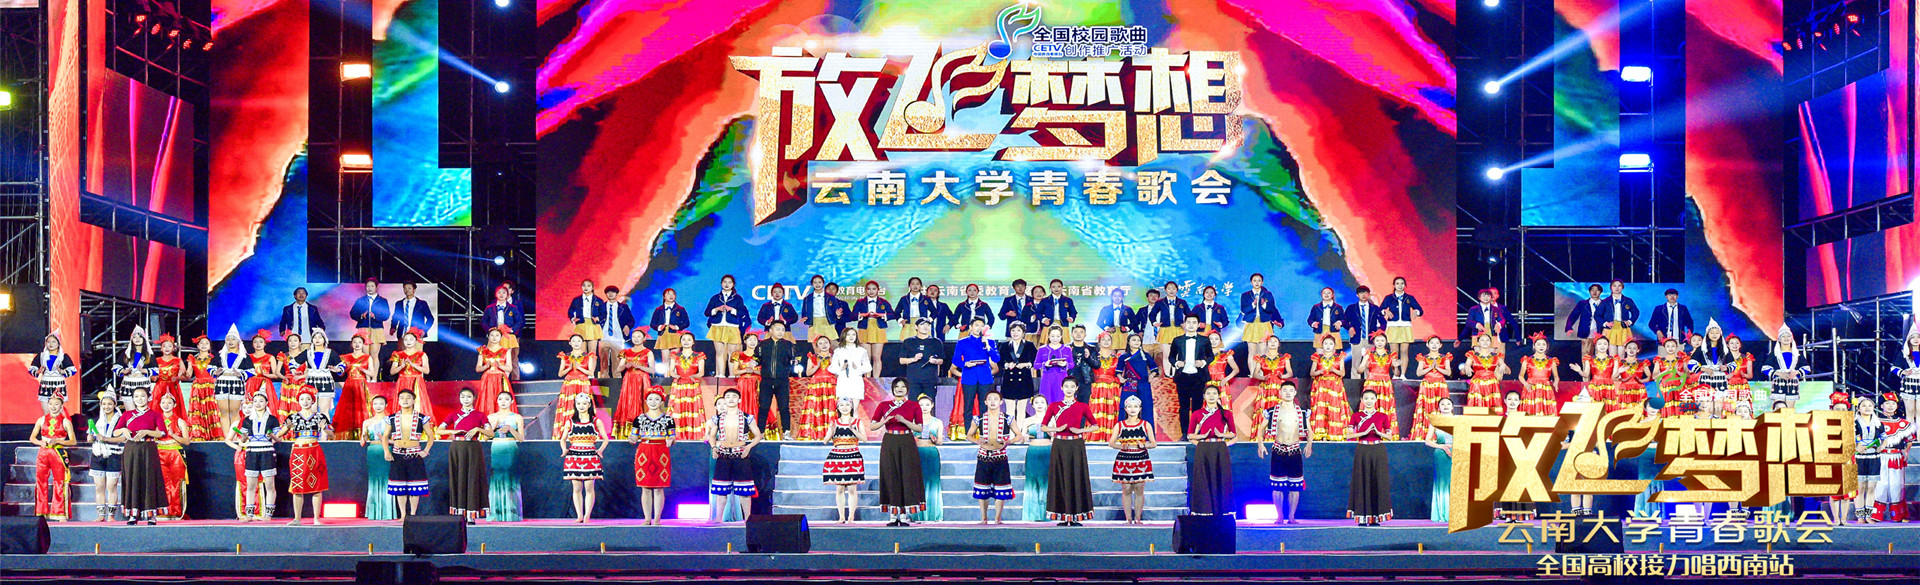 Yunnan University hosts youth singing event